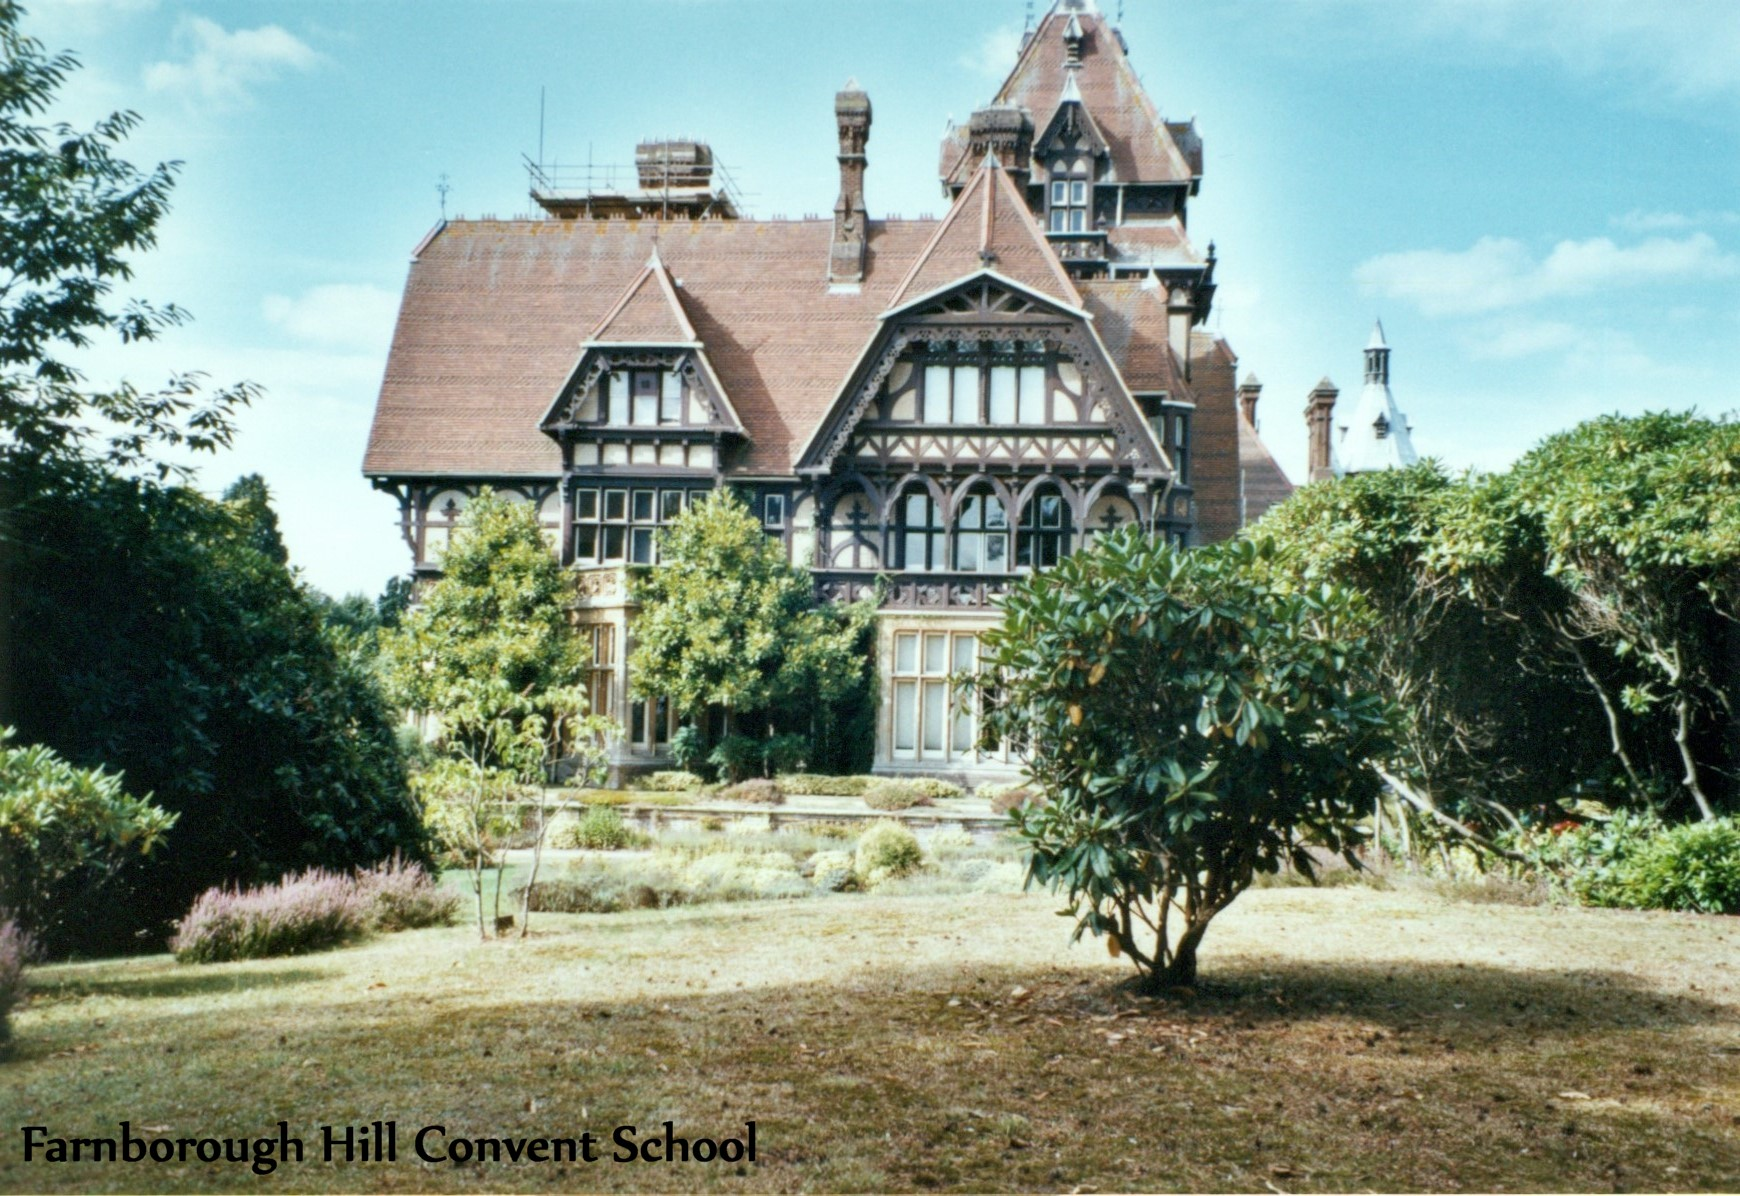 Farnborough Hill Convent